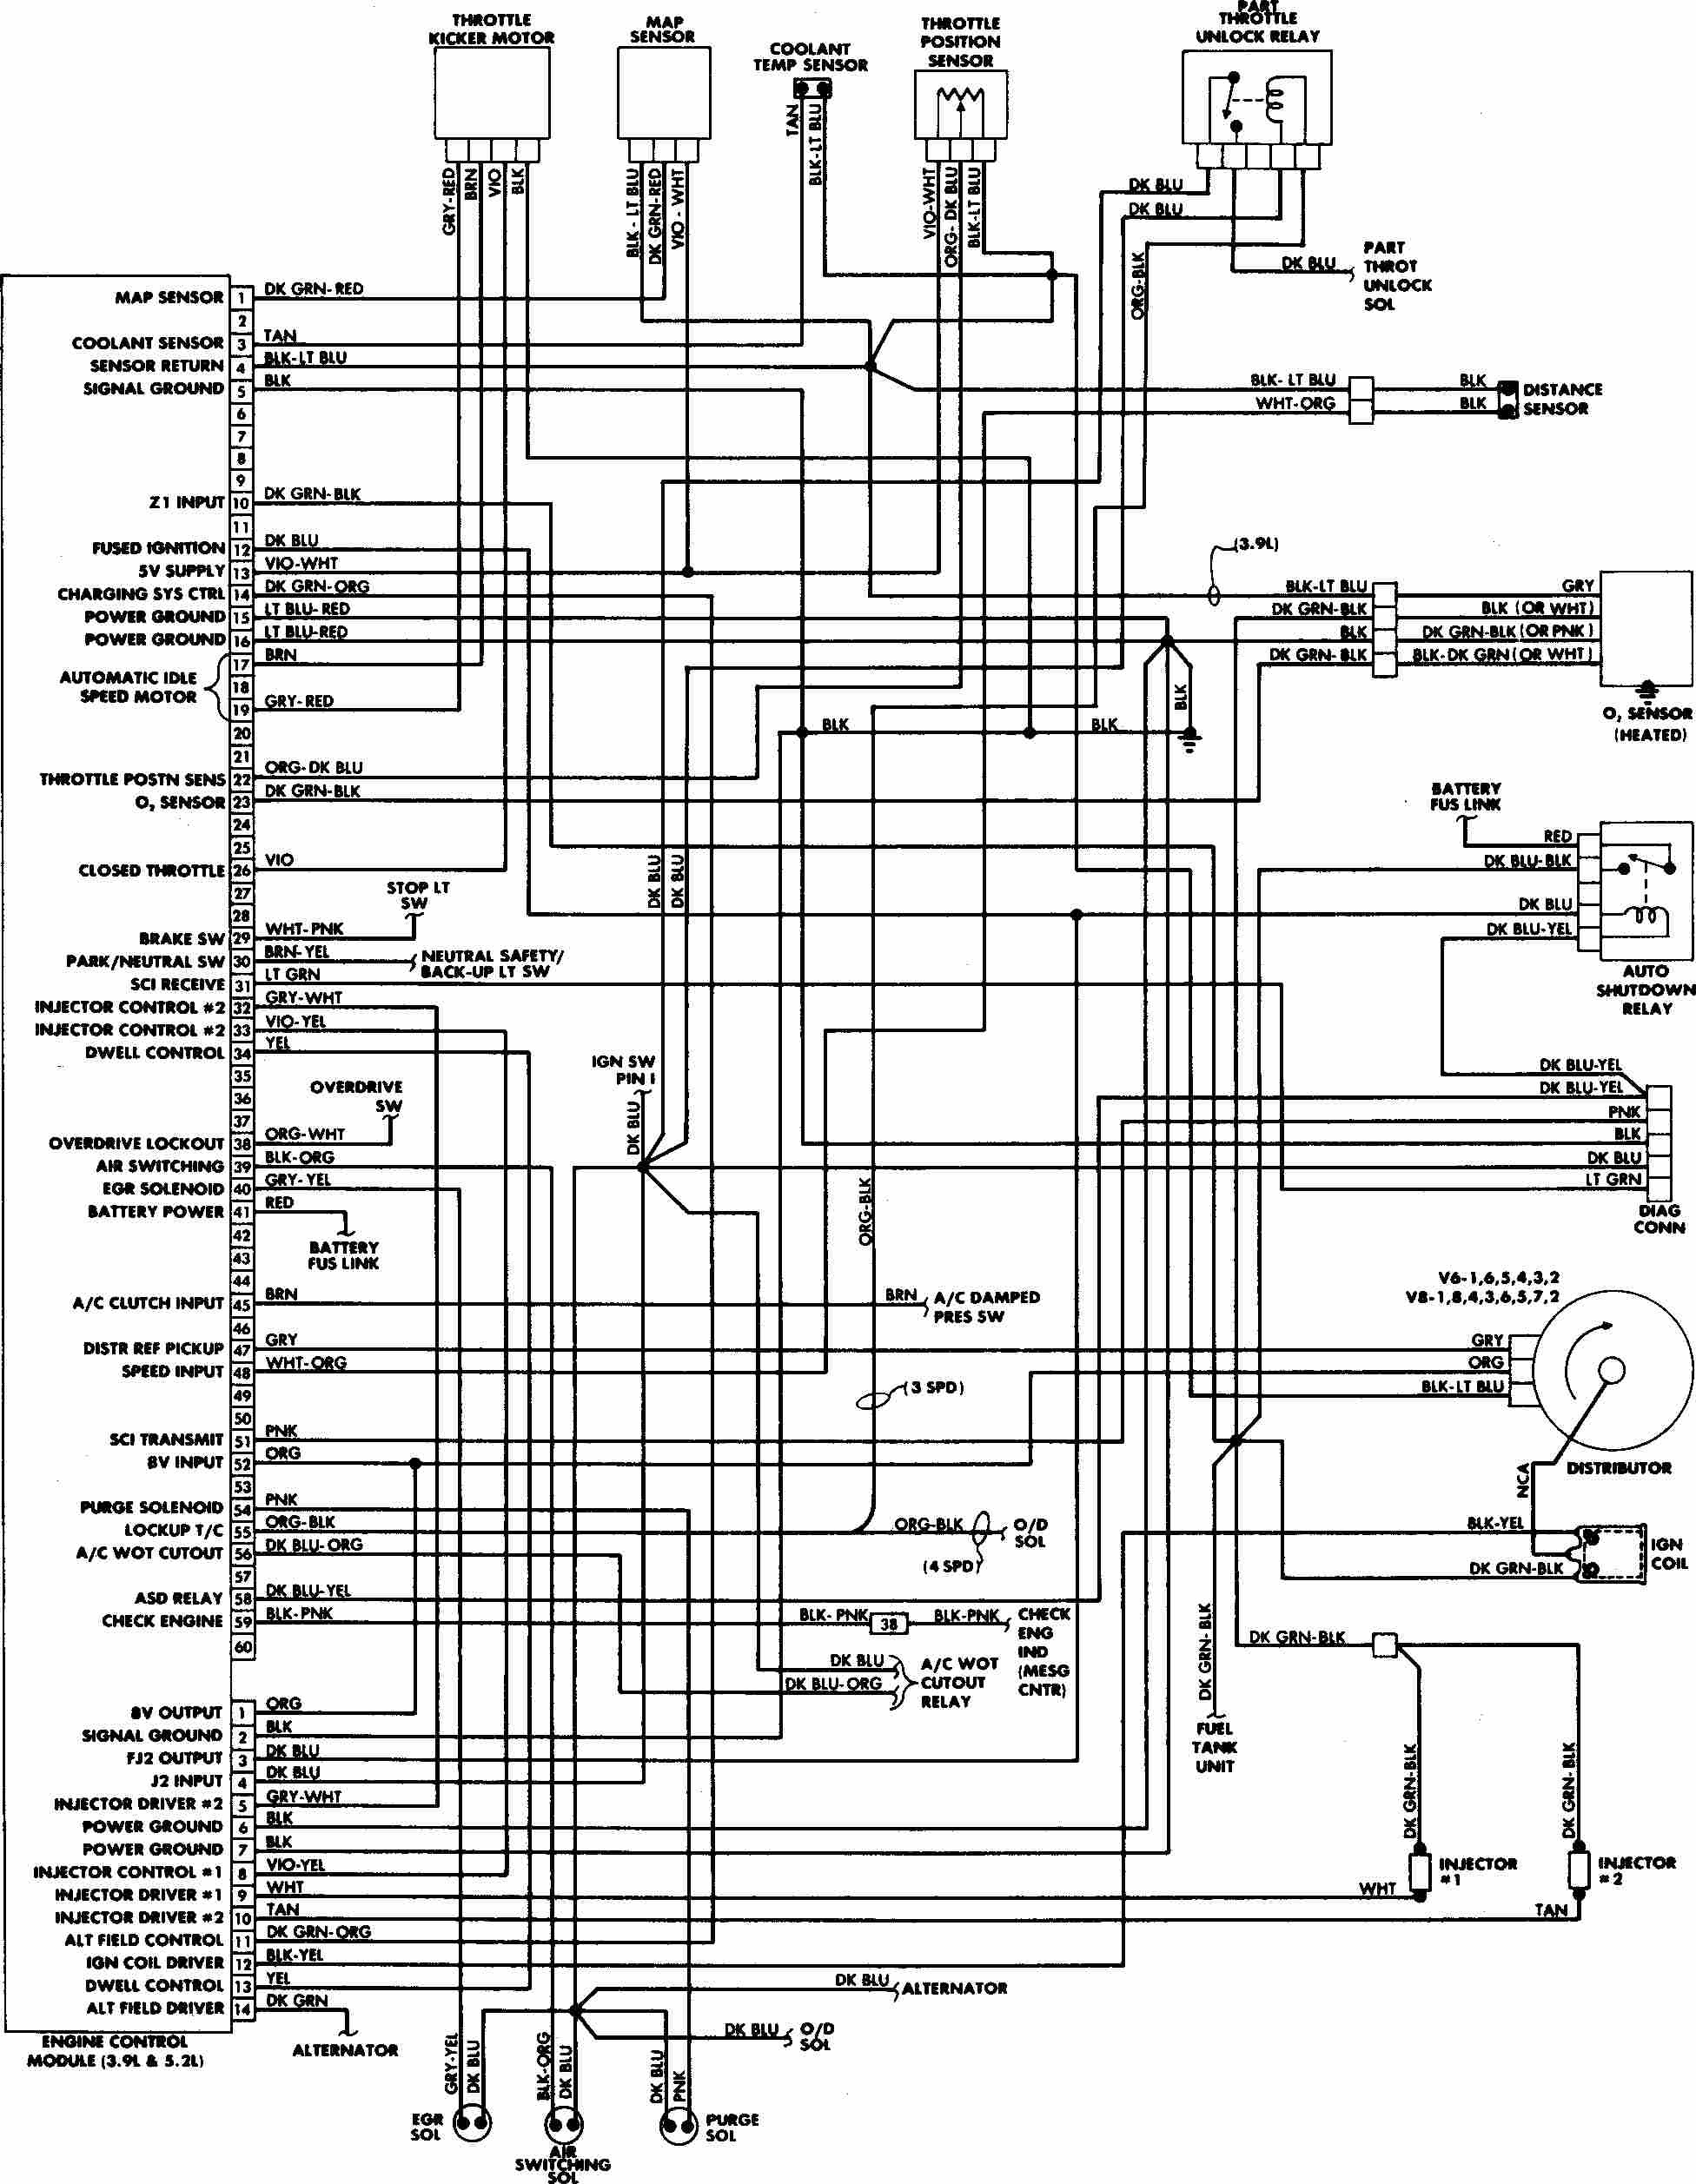 Truck Wiring Diagrams ford Alternator Wiring Diagram 1985